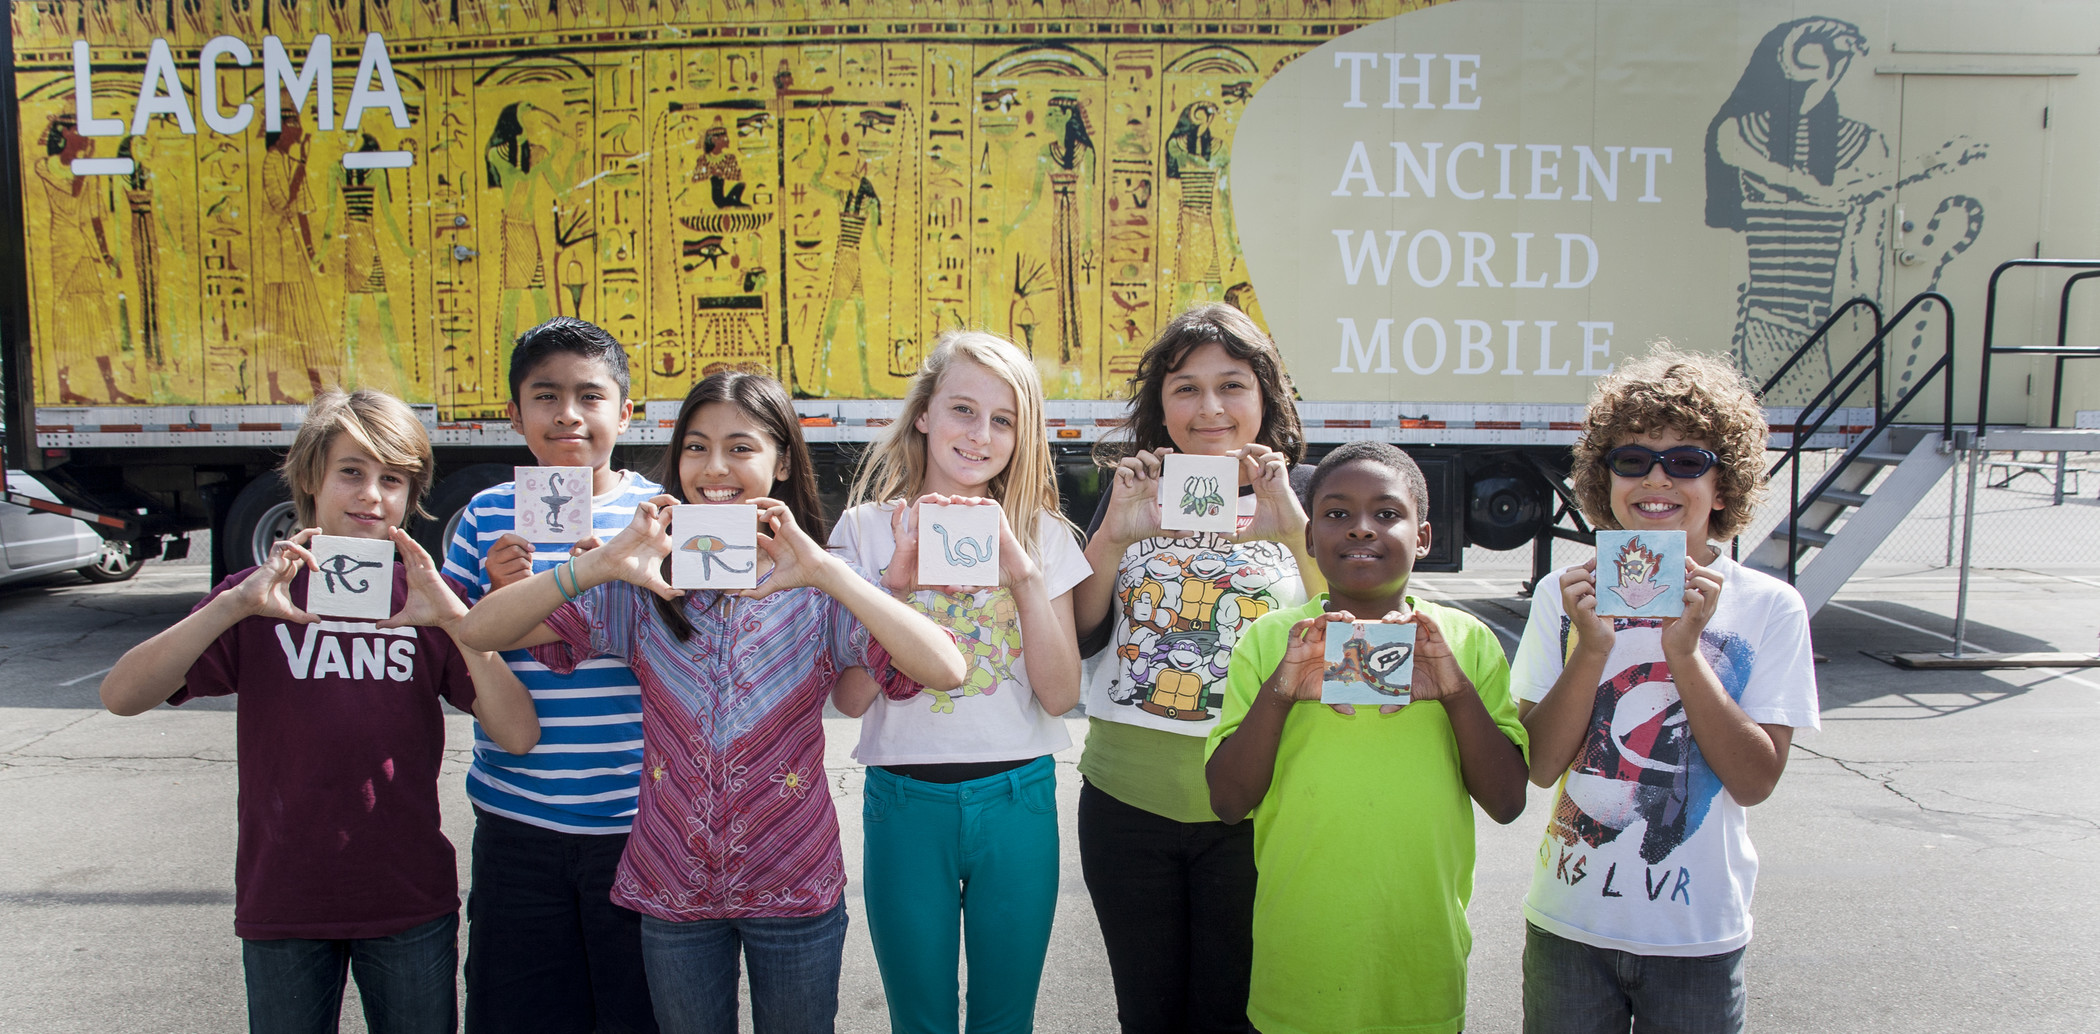 Photograph of the Ancient World Mobile Outreach program